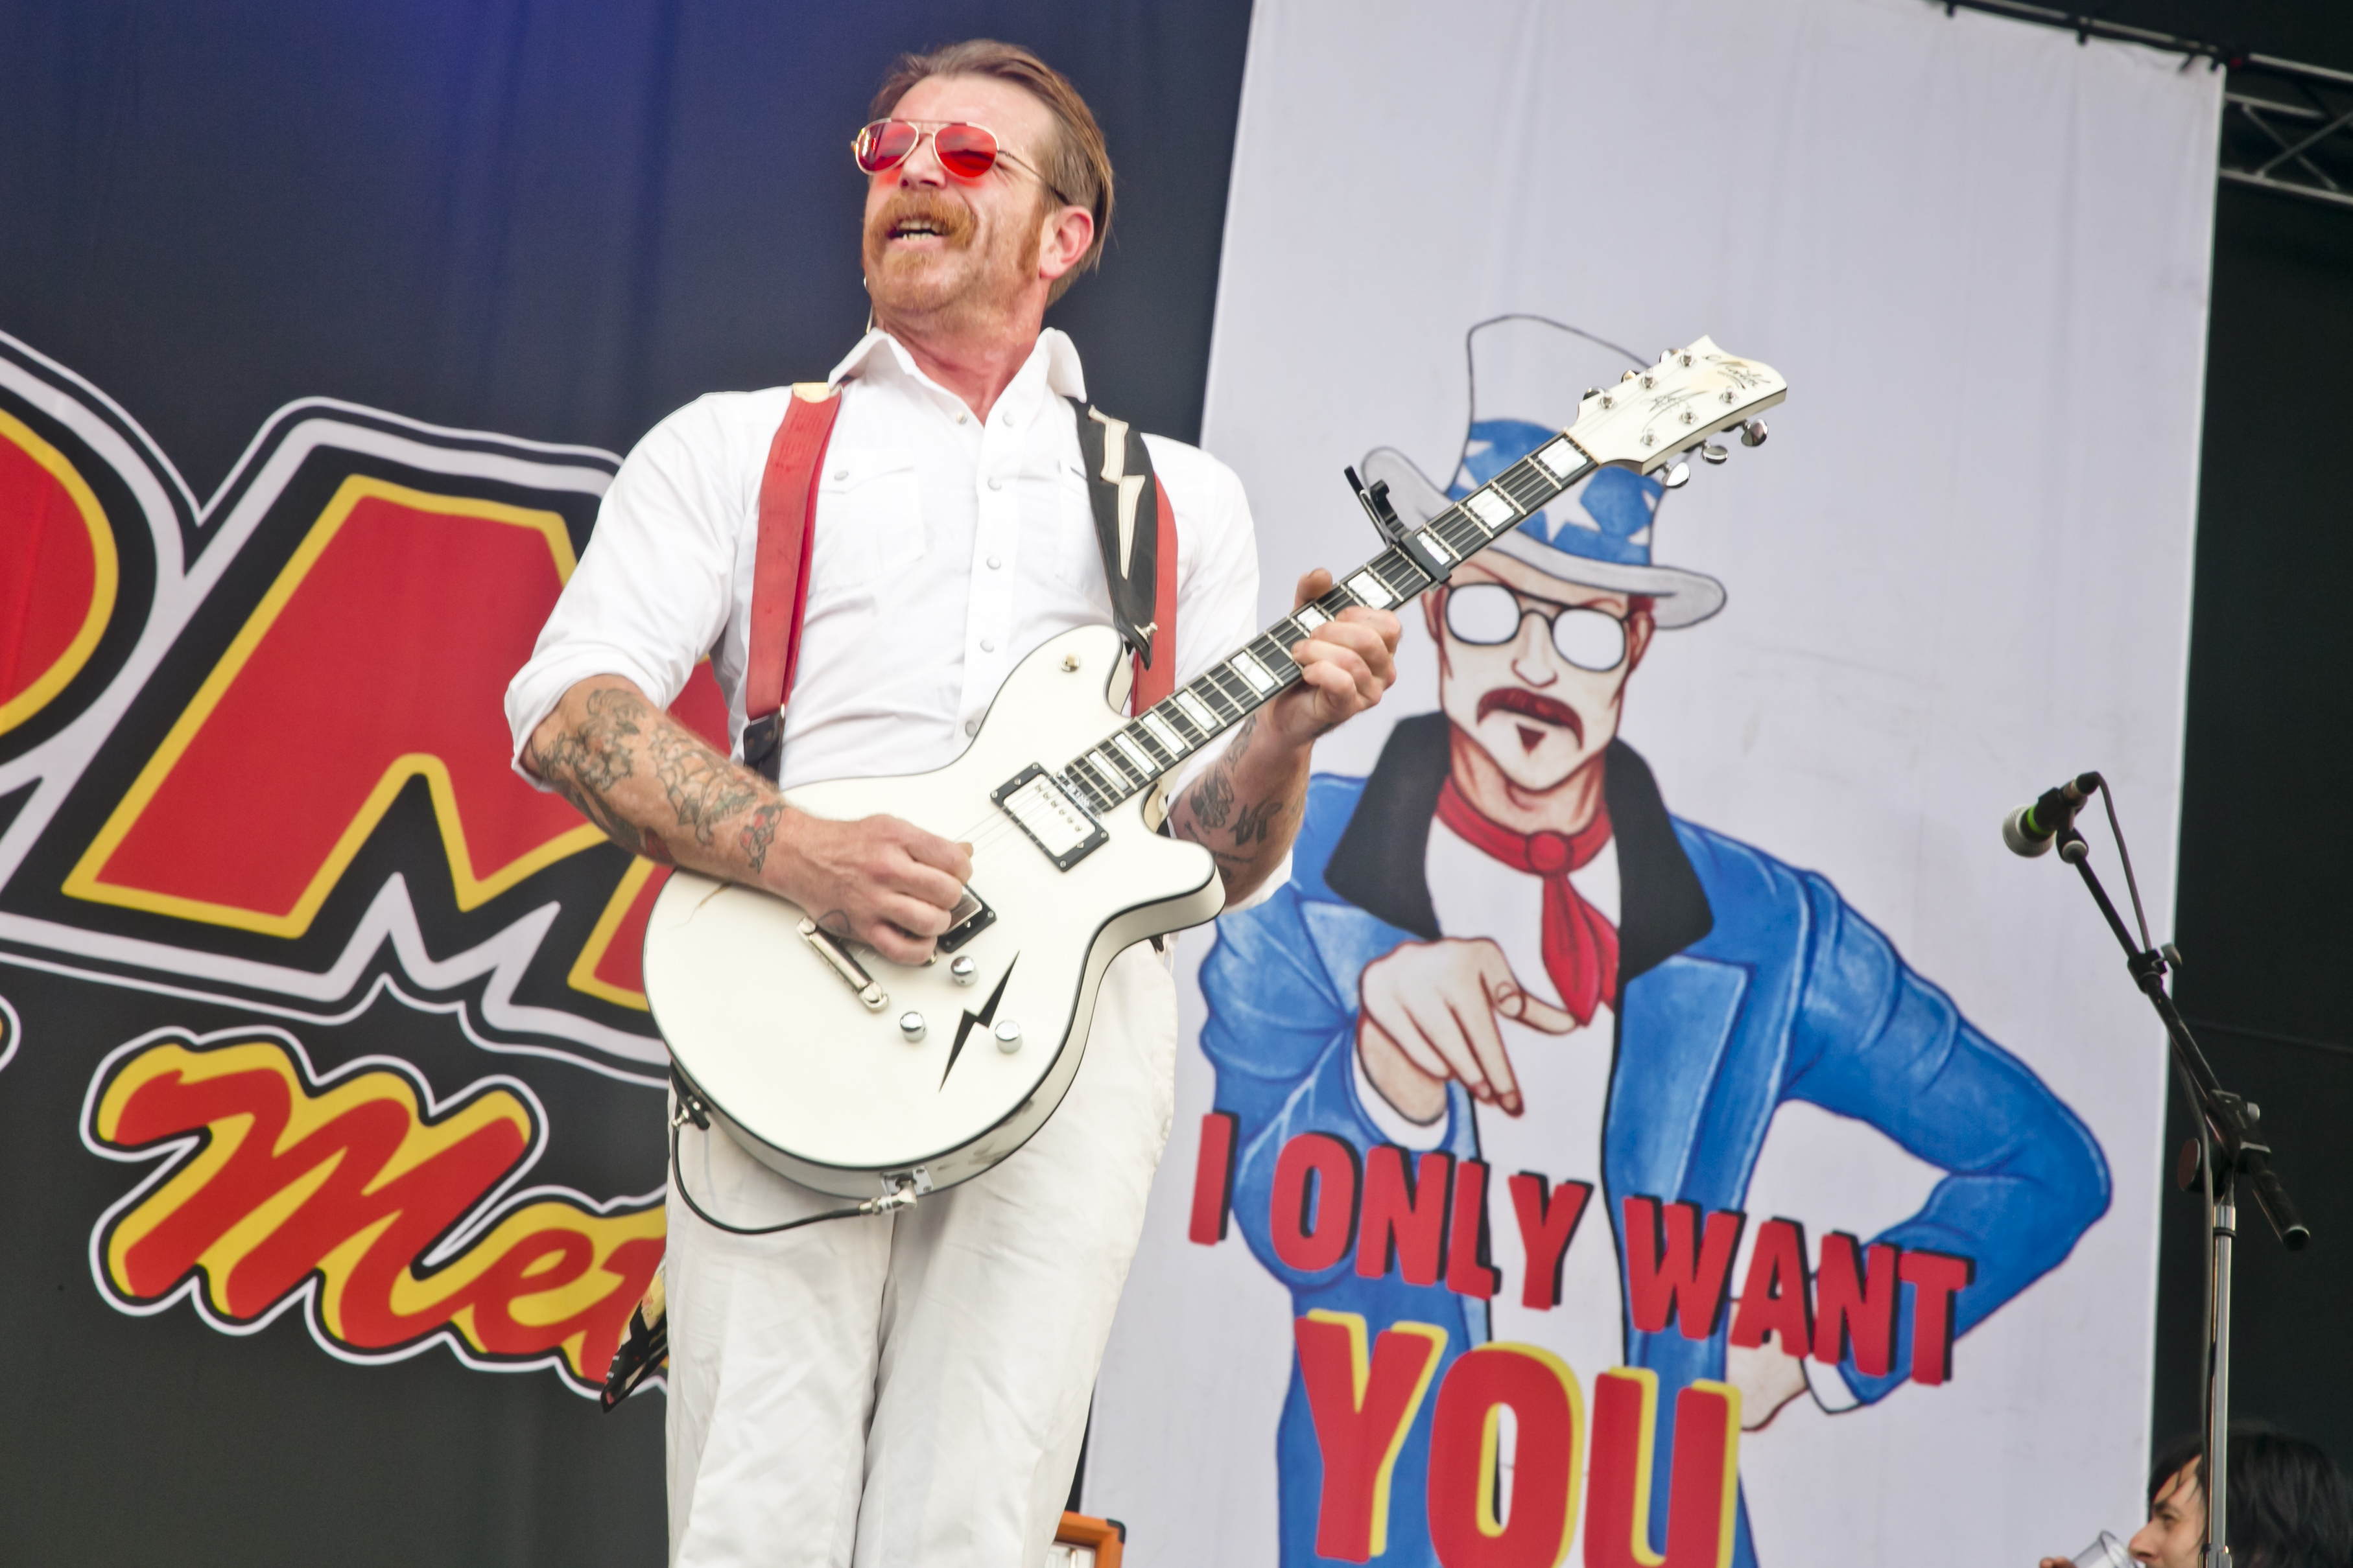 Eagles_of_death_metal_Reading_Festival_UK_Matias_Altbach (2)